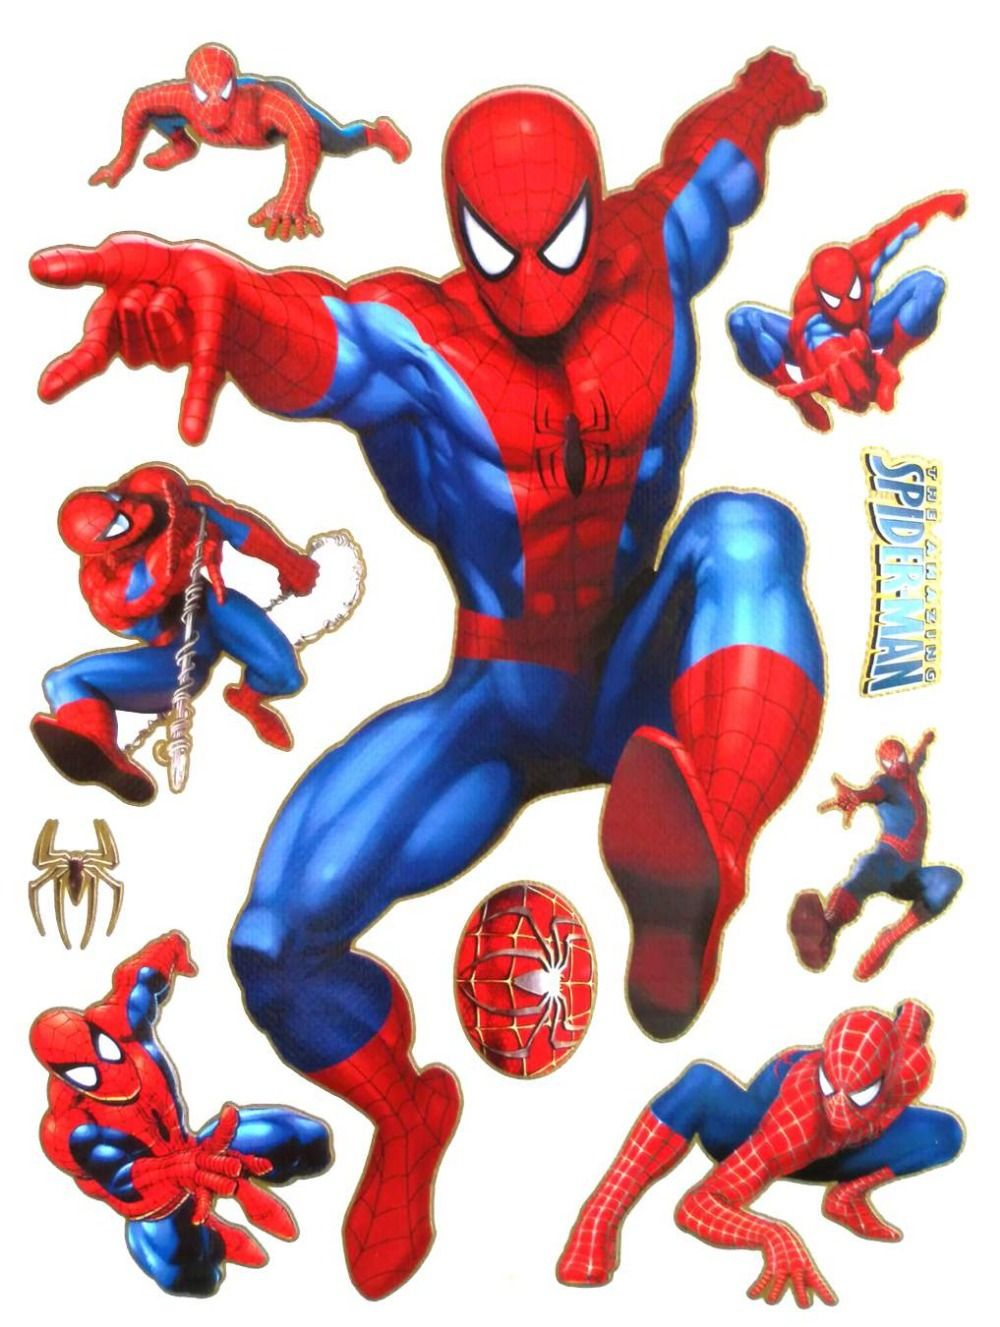 free shipping spiderman wall stickers 2designs lot jpg 1 000 1 327 free shipping spiderman wall stickers 2designs lot jpg 1 000